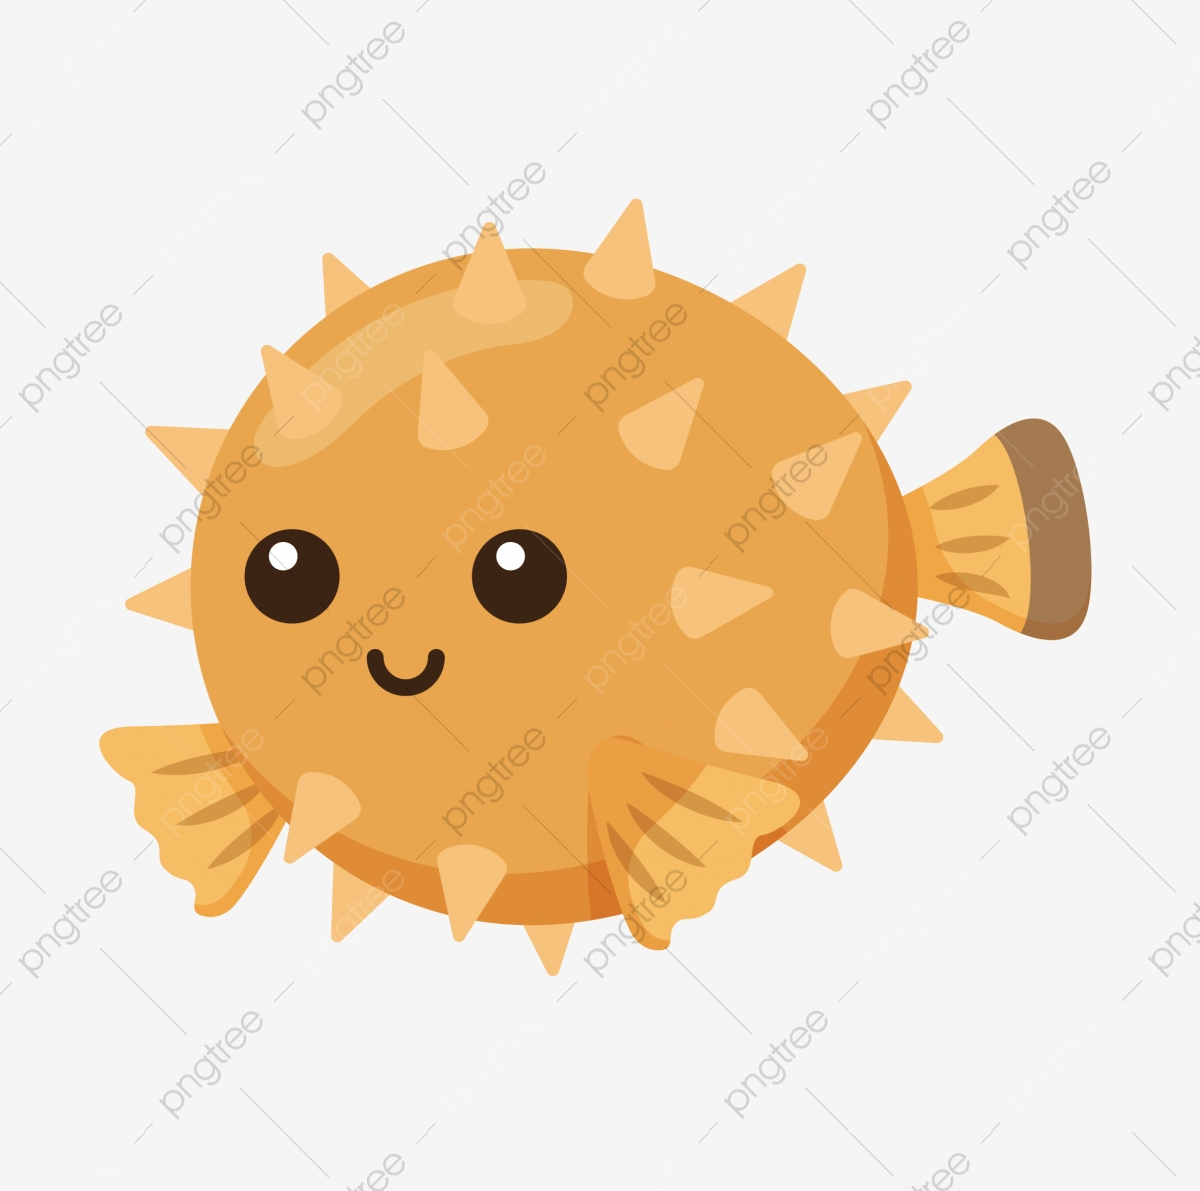 Meng Meng Sprouting Cartoon Cartoon Fish Lovely Cute Fish Cartoon Clownfish Png And Vector With Transparent Background For Free Download